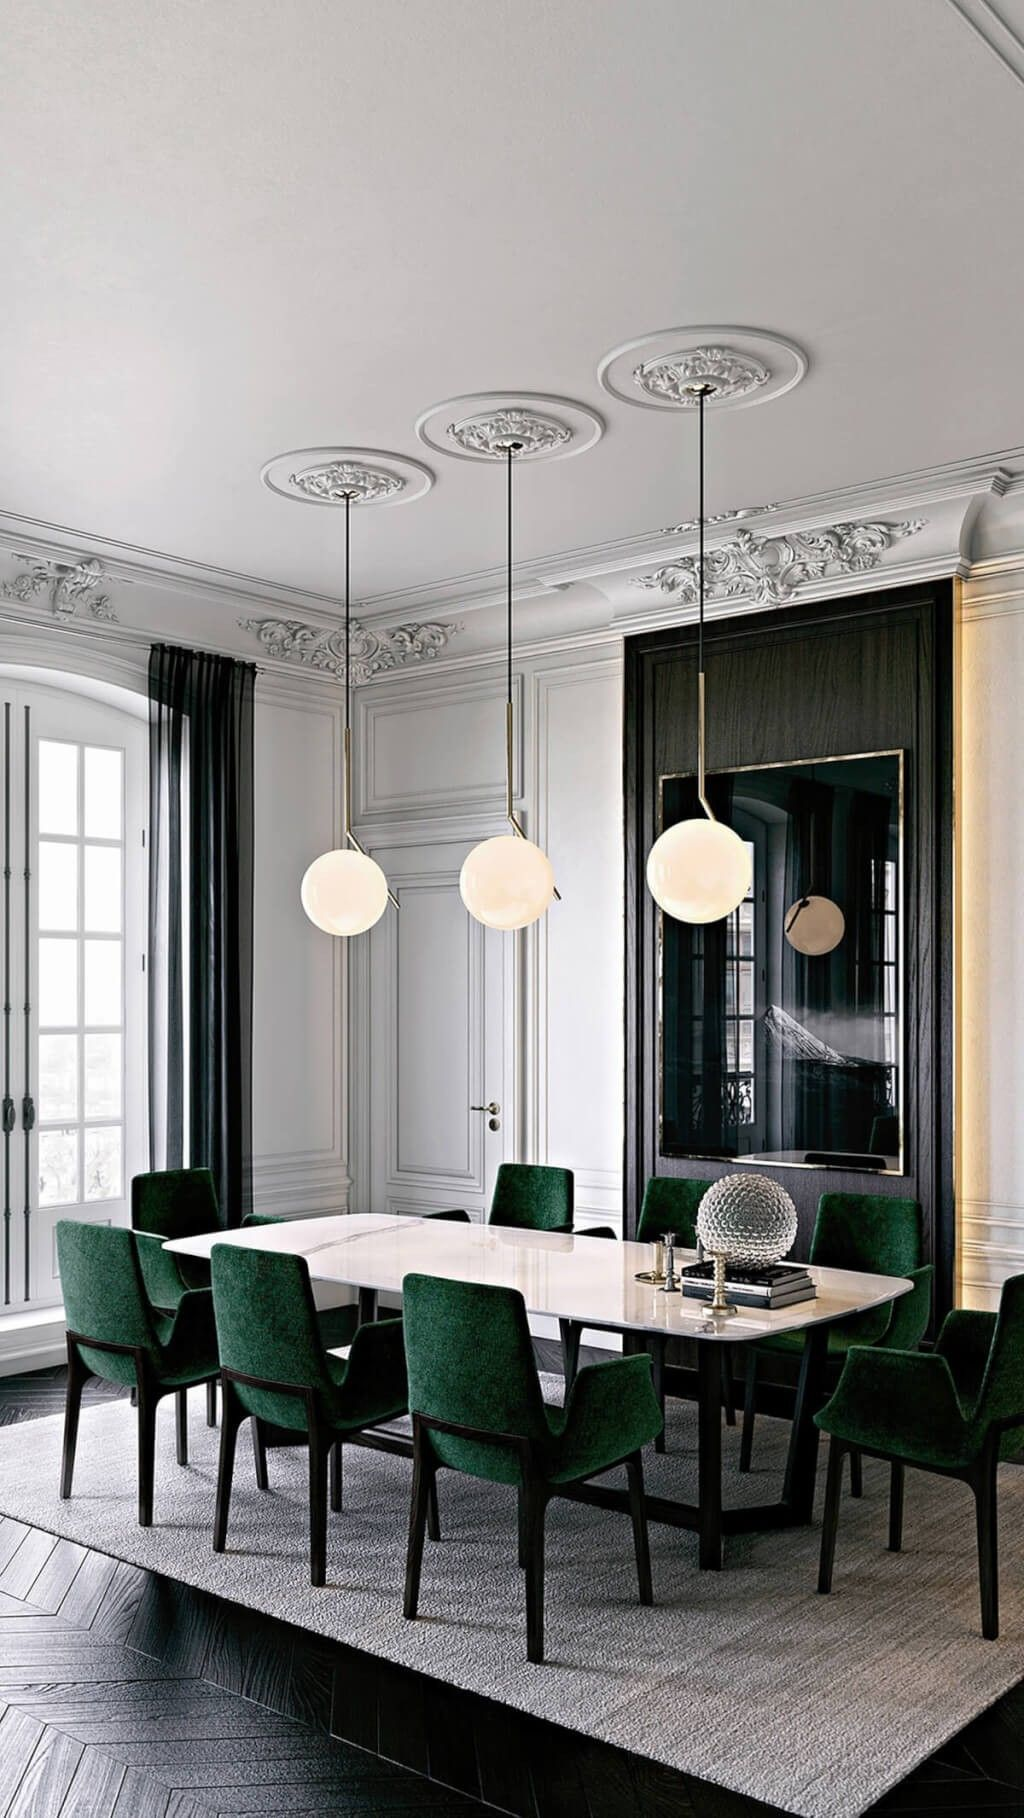 White Wall Emerald Green Accents Luxury Dining Room Dining Room